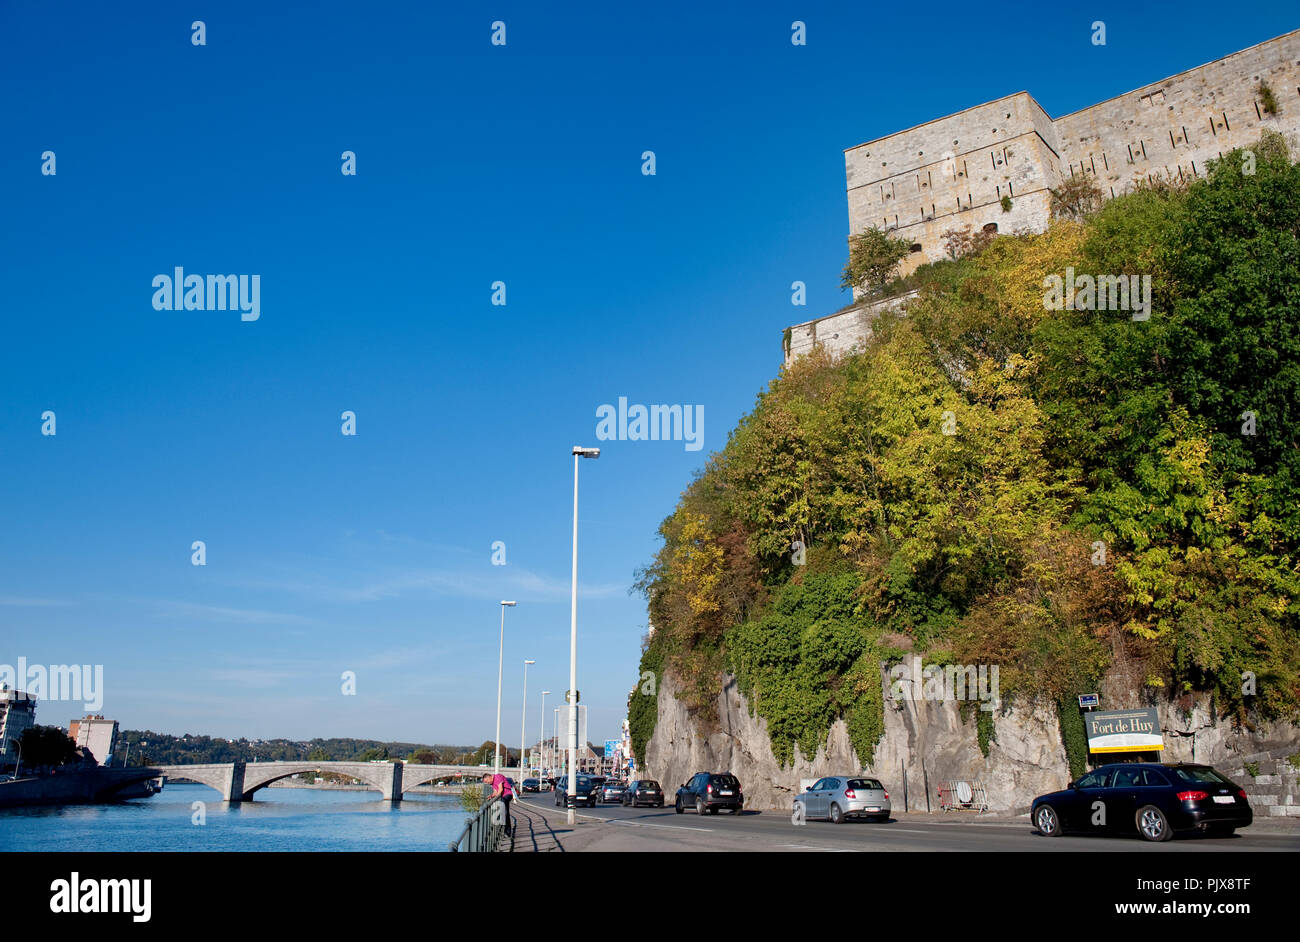 Panoramic view over the Walloon municipality Huy along the Meuse river (Belgium, 29/09/2011) Stock Photo